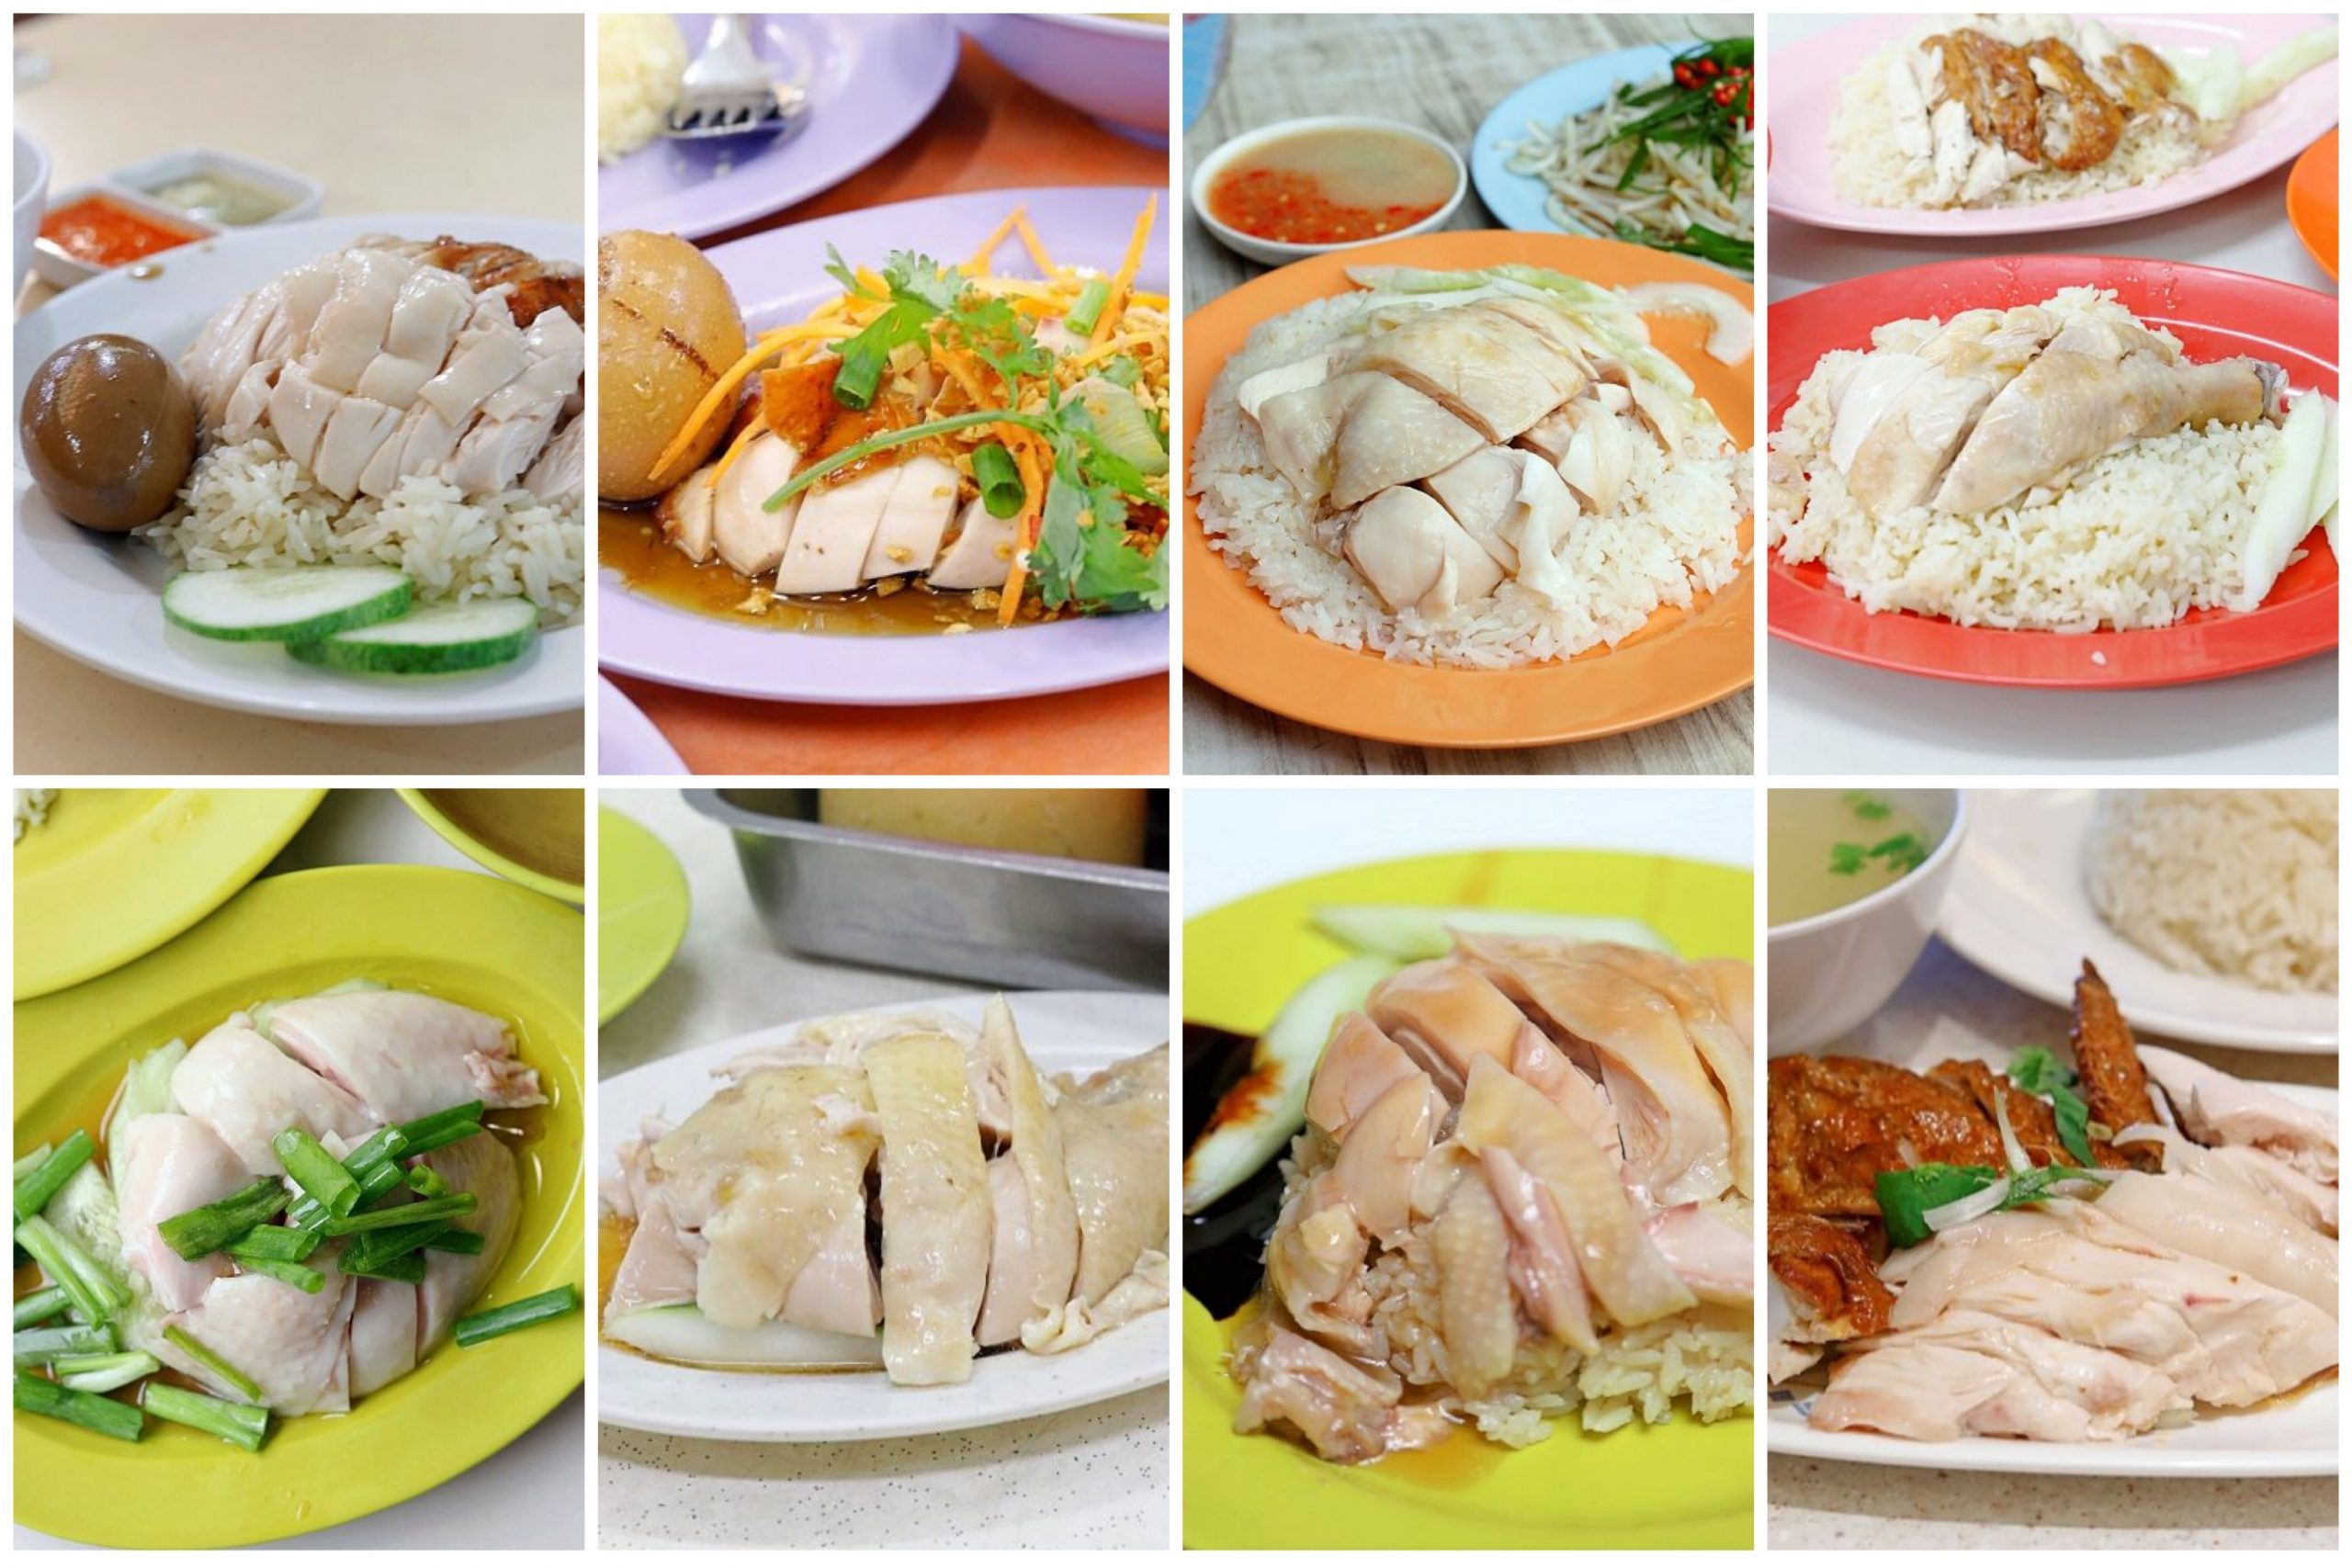 10 Hainanese Chicken Rice In Singapore From Sin Kee Hua Kee Chin Chin To Delicious Boneless Chicken Rice Danielfooddiary Com